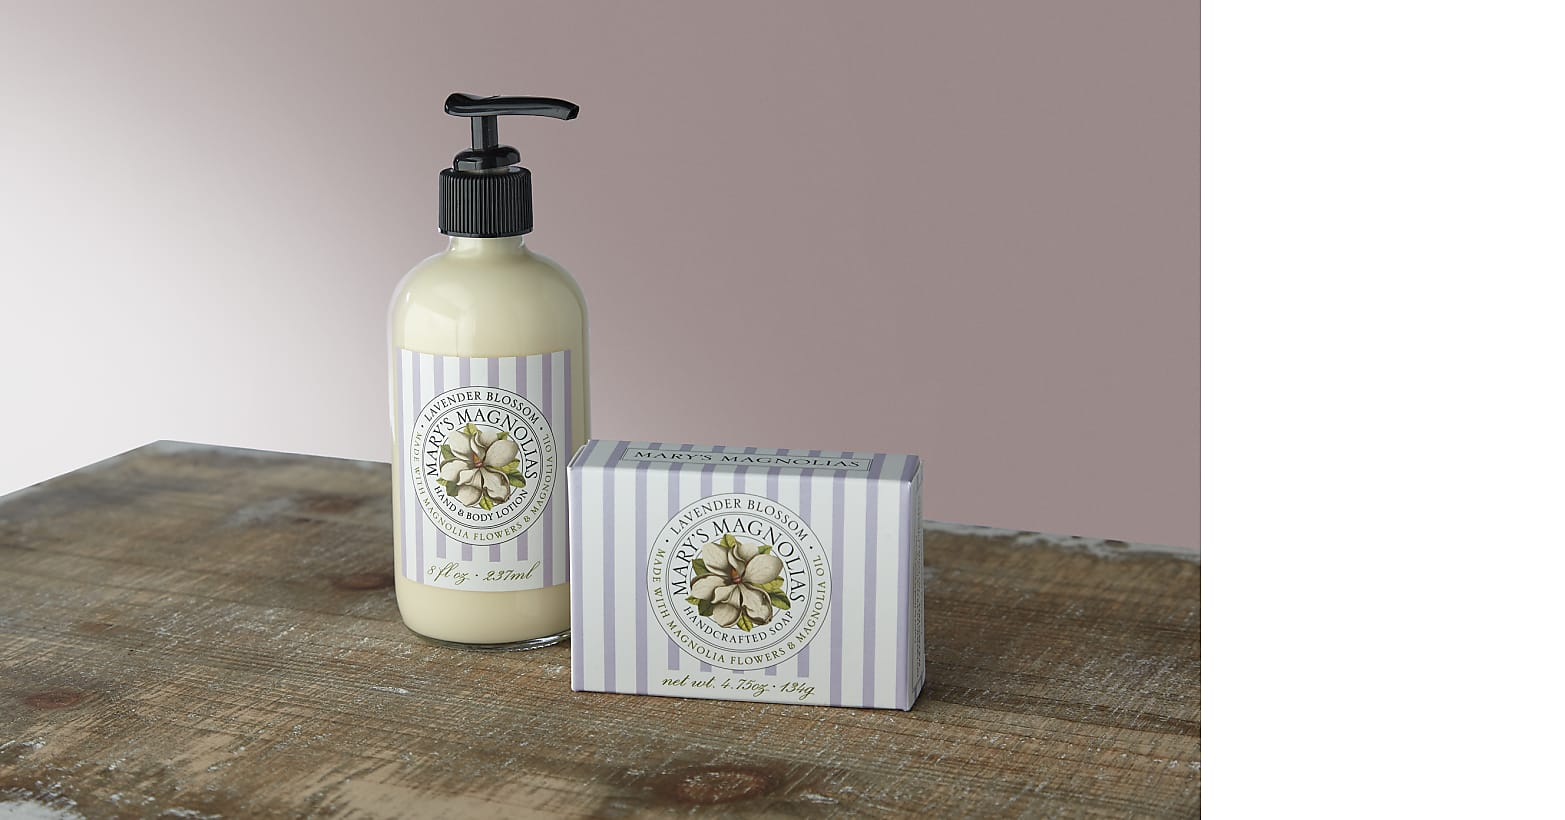 Magnolia Sapling with Lavender Soap & Lotion Duet - Image 4 Of 4